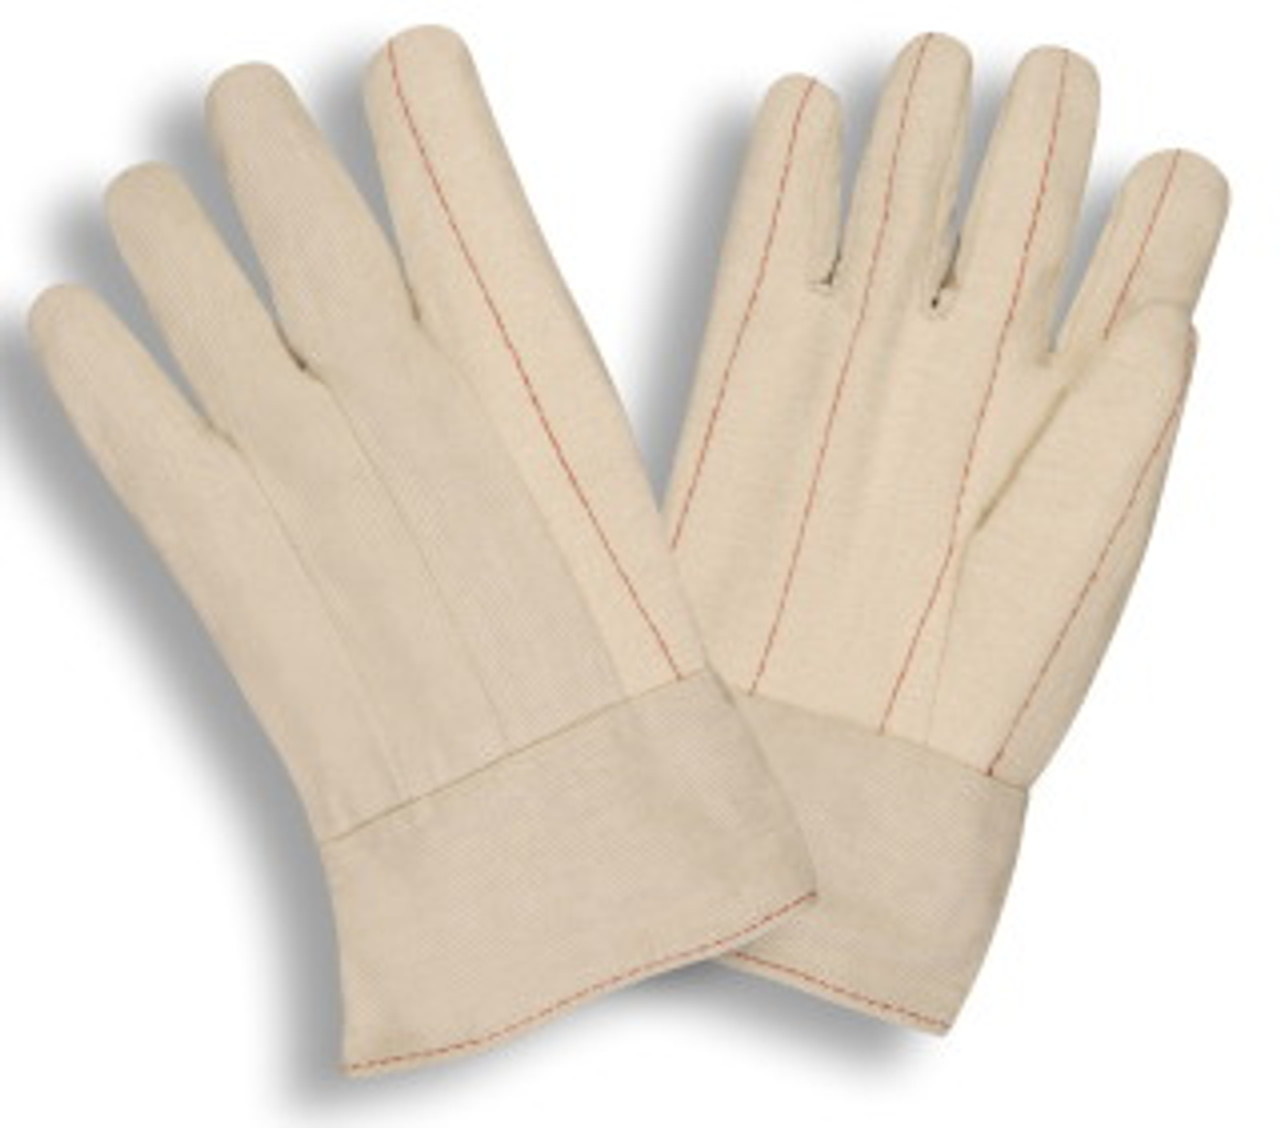 2400: Double Palm/Nap Out Gloves - 12 Pack